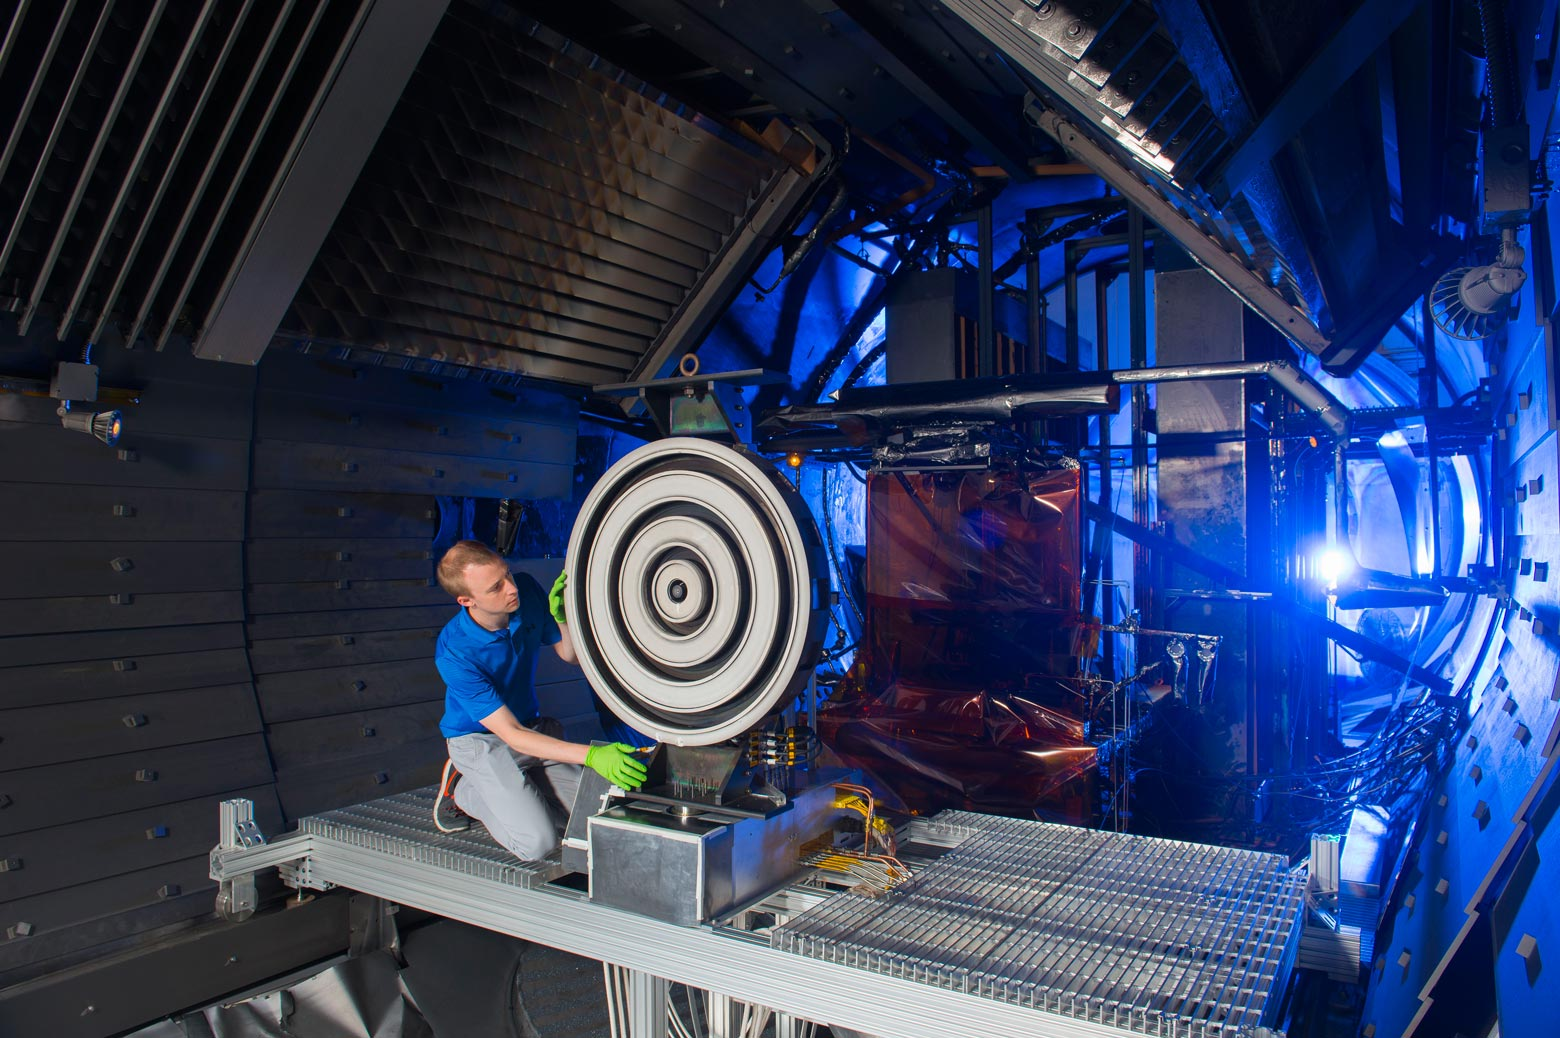 Researcher makes adjustments on an X3 thruster